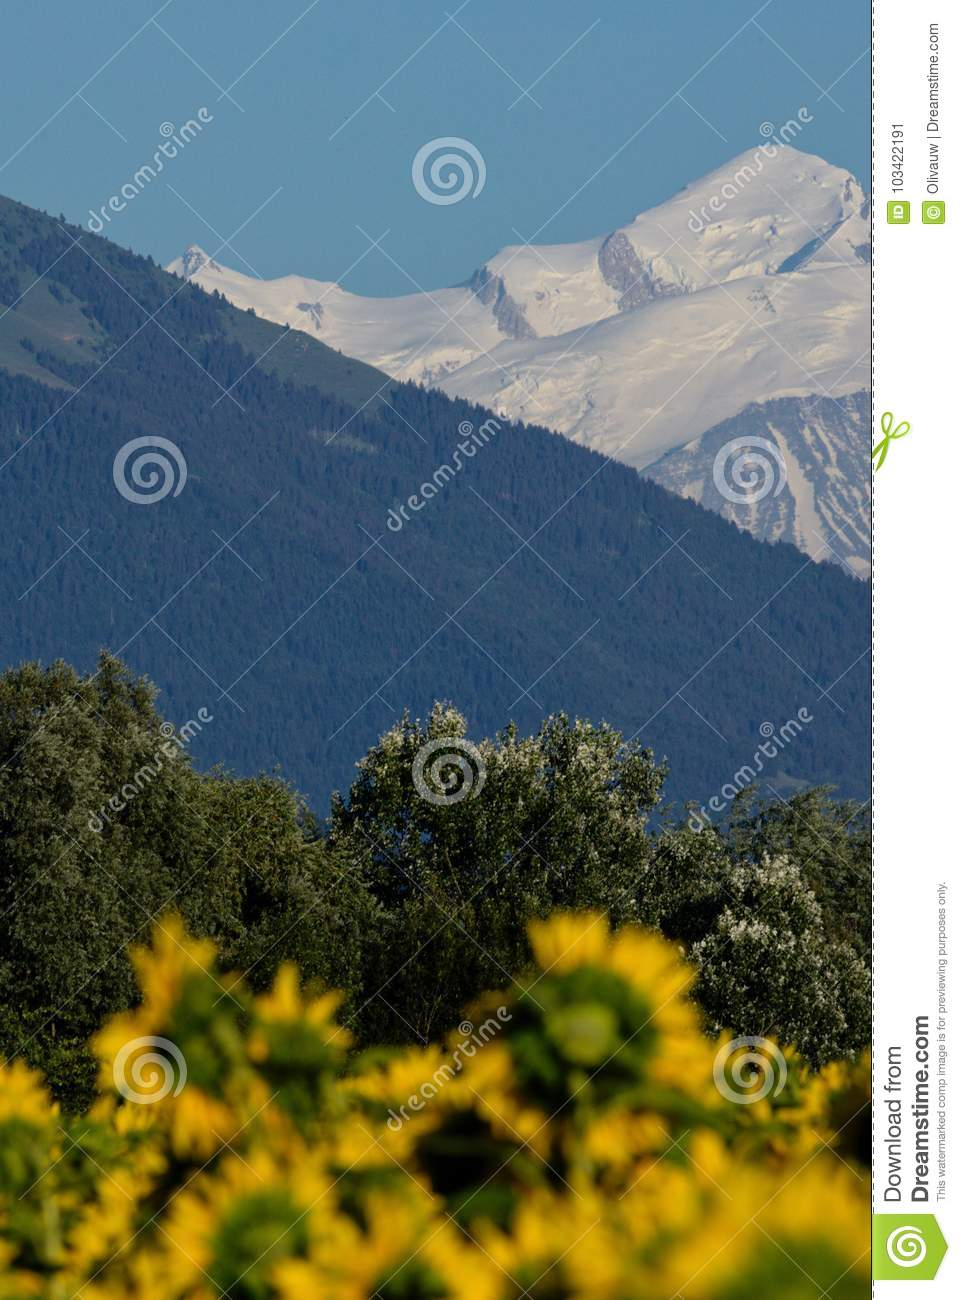 Strata of Nature: Fields, Forests and Mountains